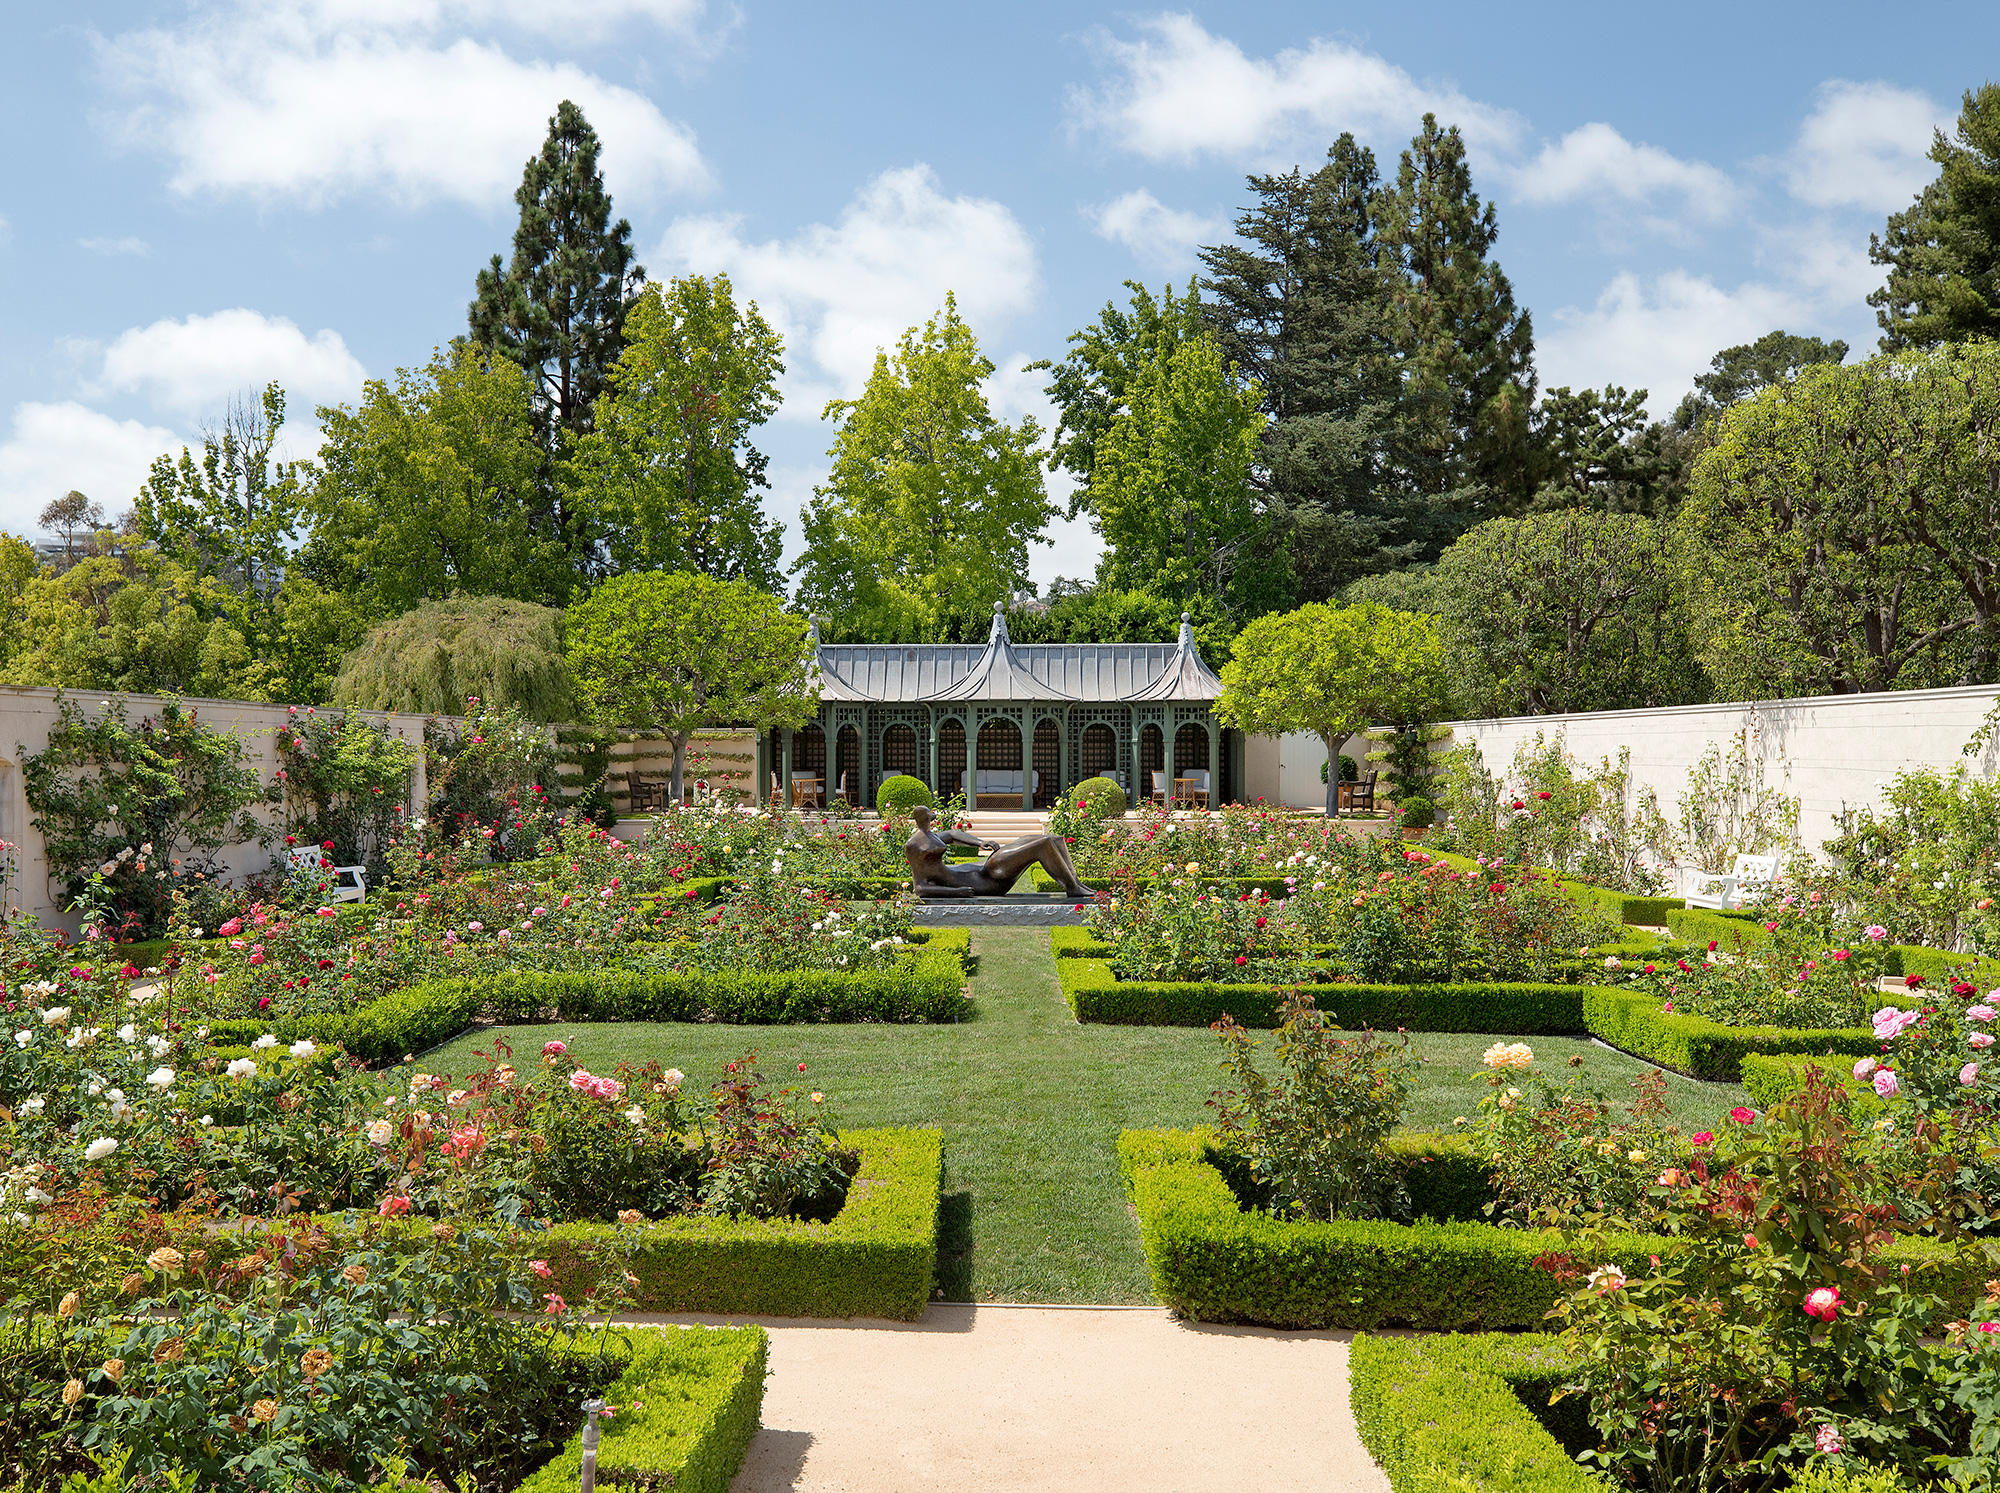 The Real Beverly Hillbillies Mansion for Sale in Bel-Air Just Got a $50 Million Price Chop most-expensive-home-america-backyard-garden